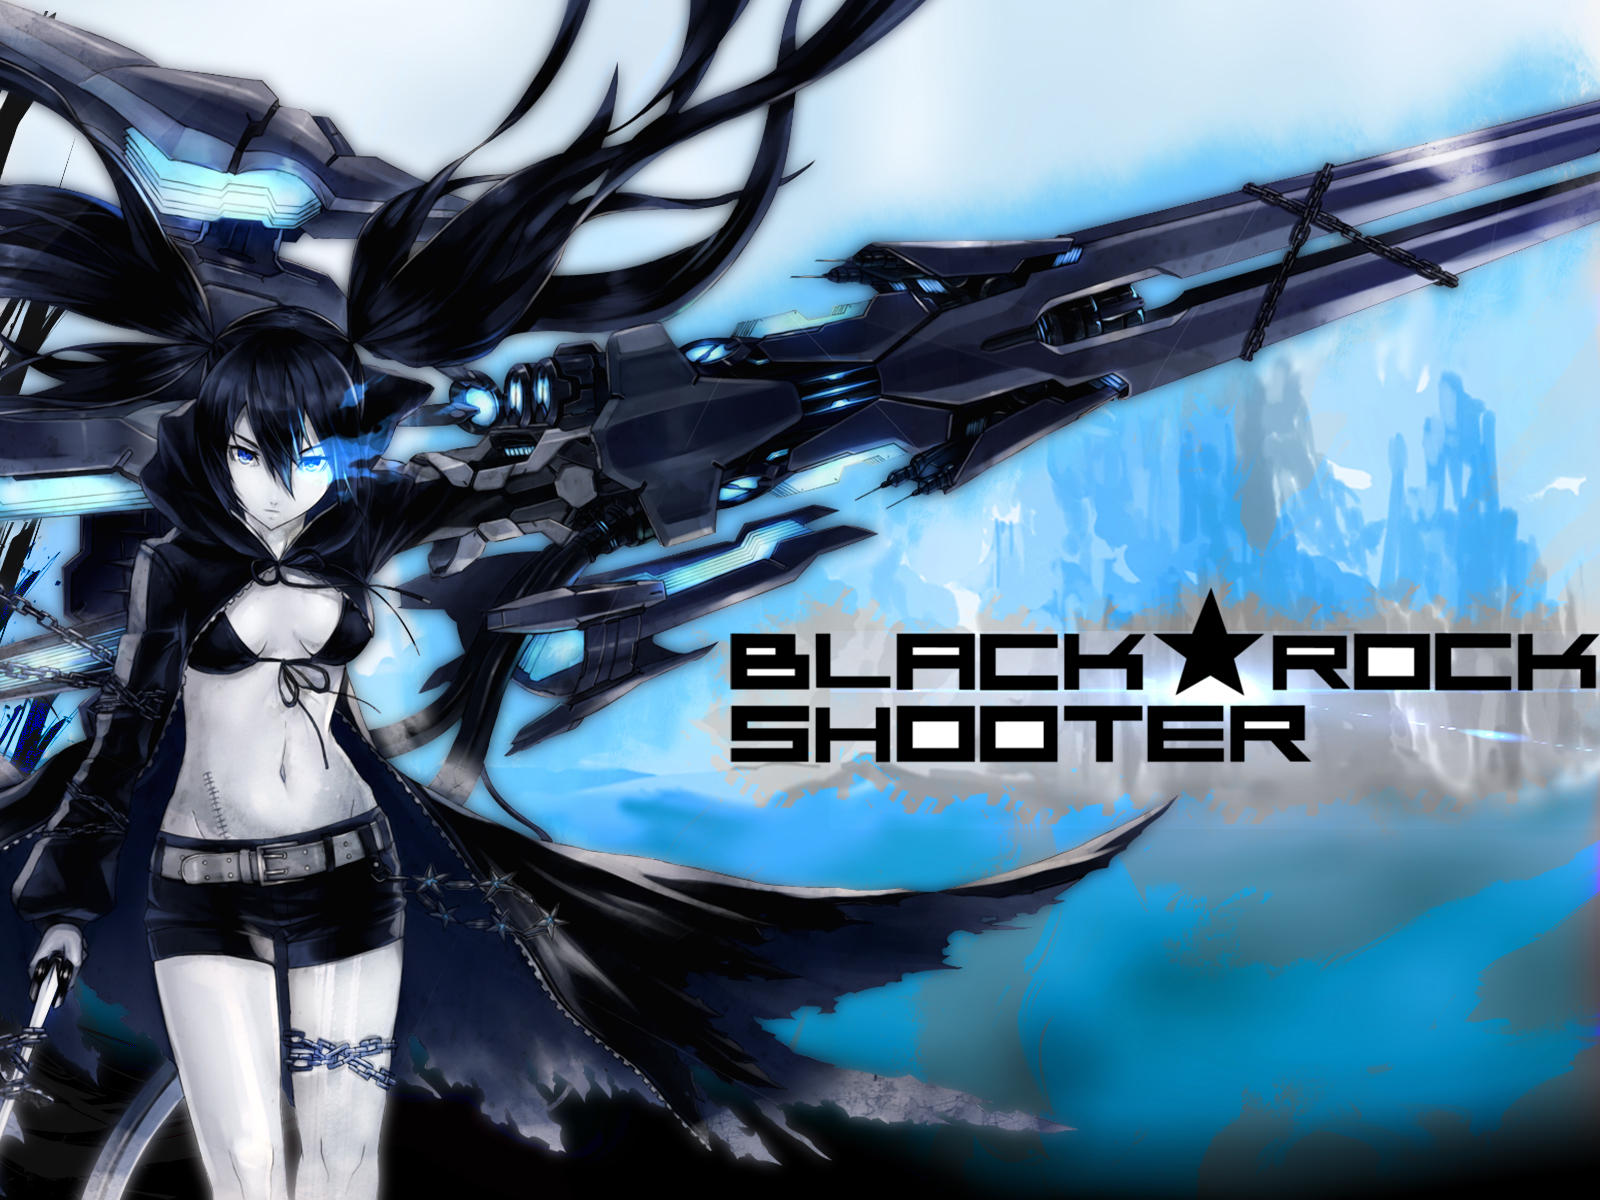 Black rock shooter blue death wallpaper and background - Anime wallpaper black background ...